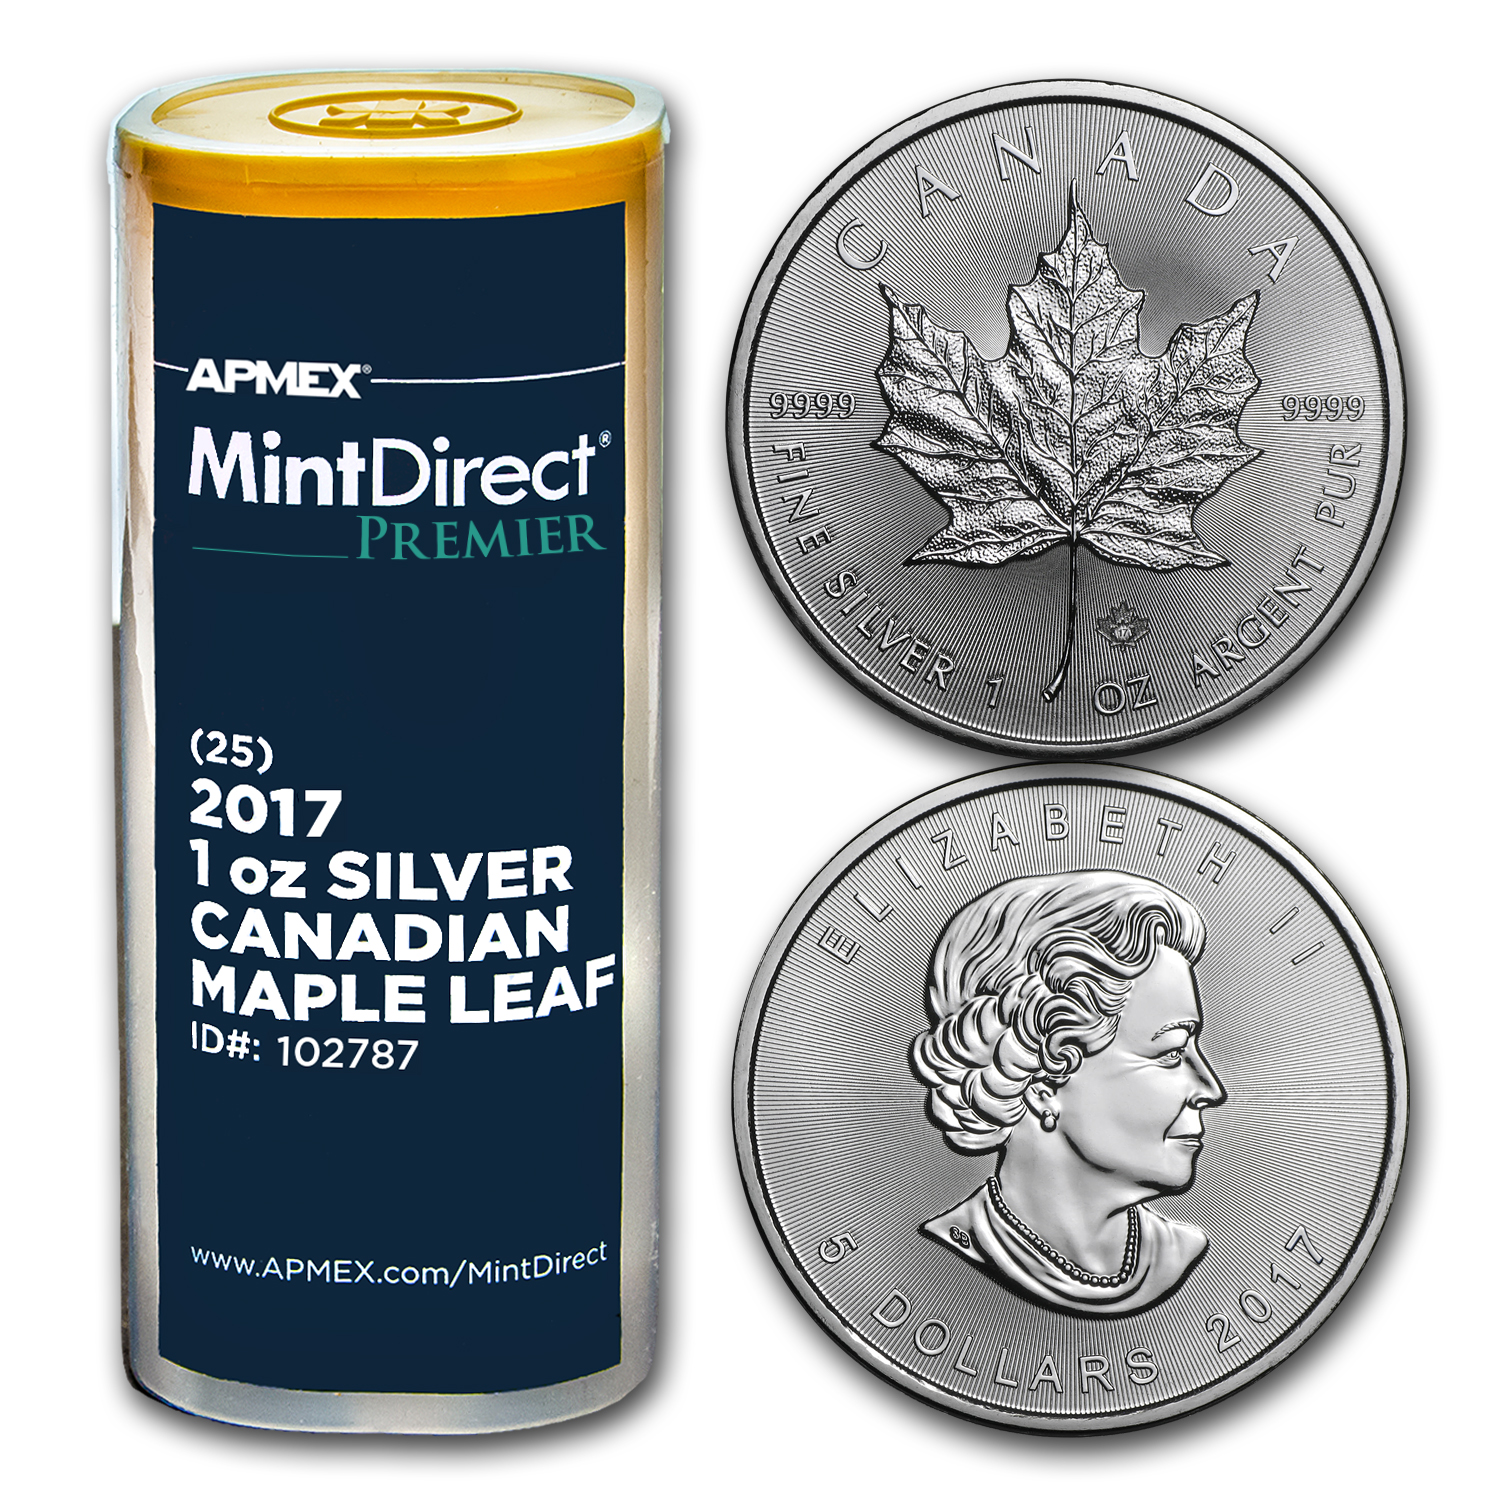 2017 1 oz Silver Maple Leaf (25-Coin MintDirect® Premier Tube)